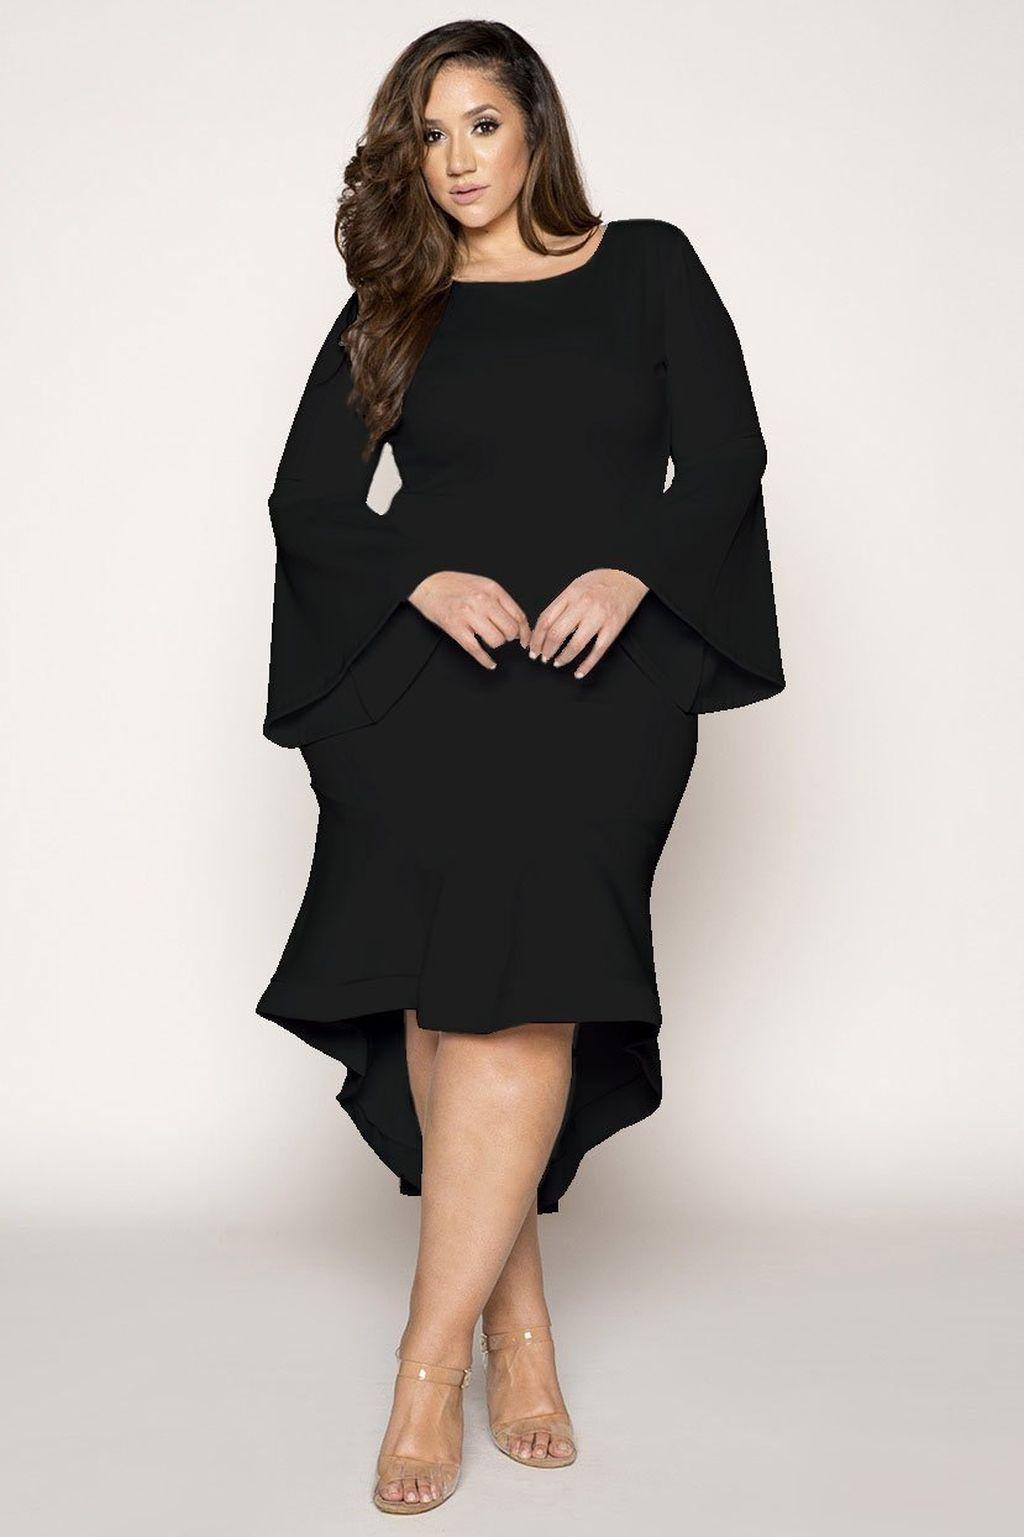 Linden Lace Top Plus Size Dressy Tops Dressy Tops Plus Size Outfits [ 1400 x 844 Pixel ]